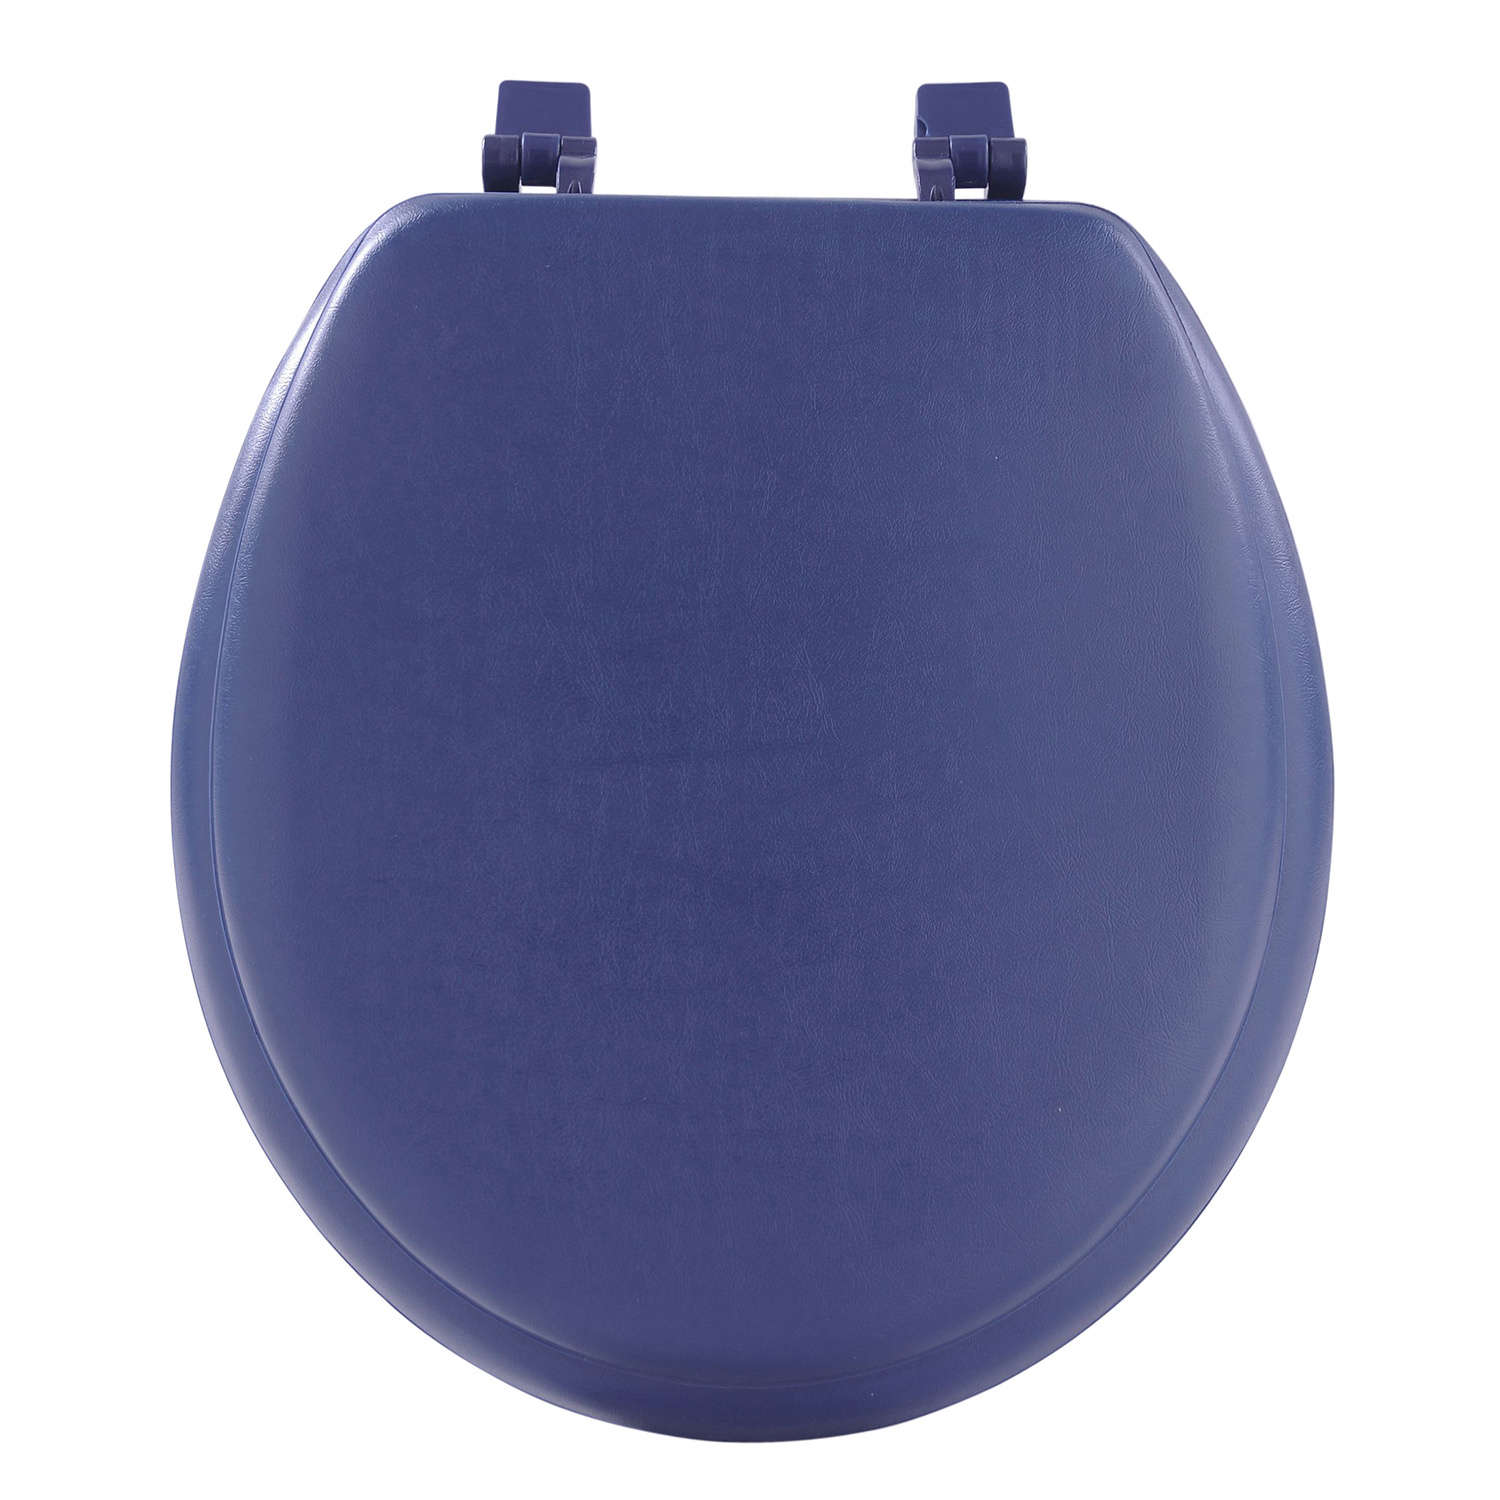 Navy Blue Toilet Seat Cover Navy Blue Soft Padded Toilet Seat